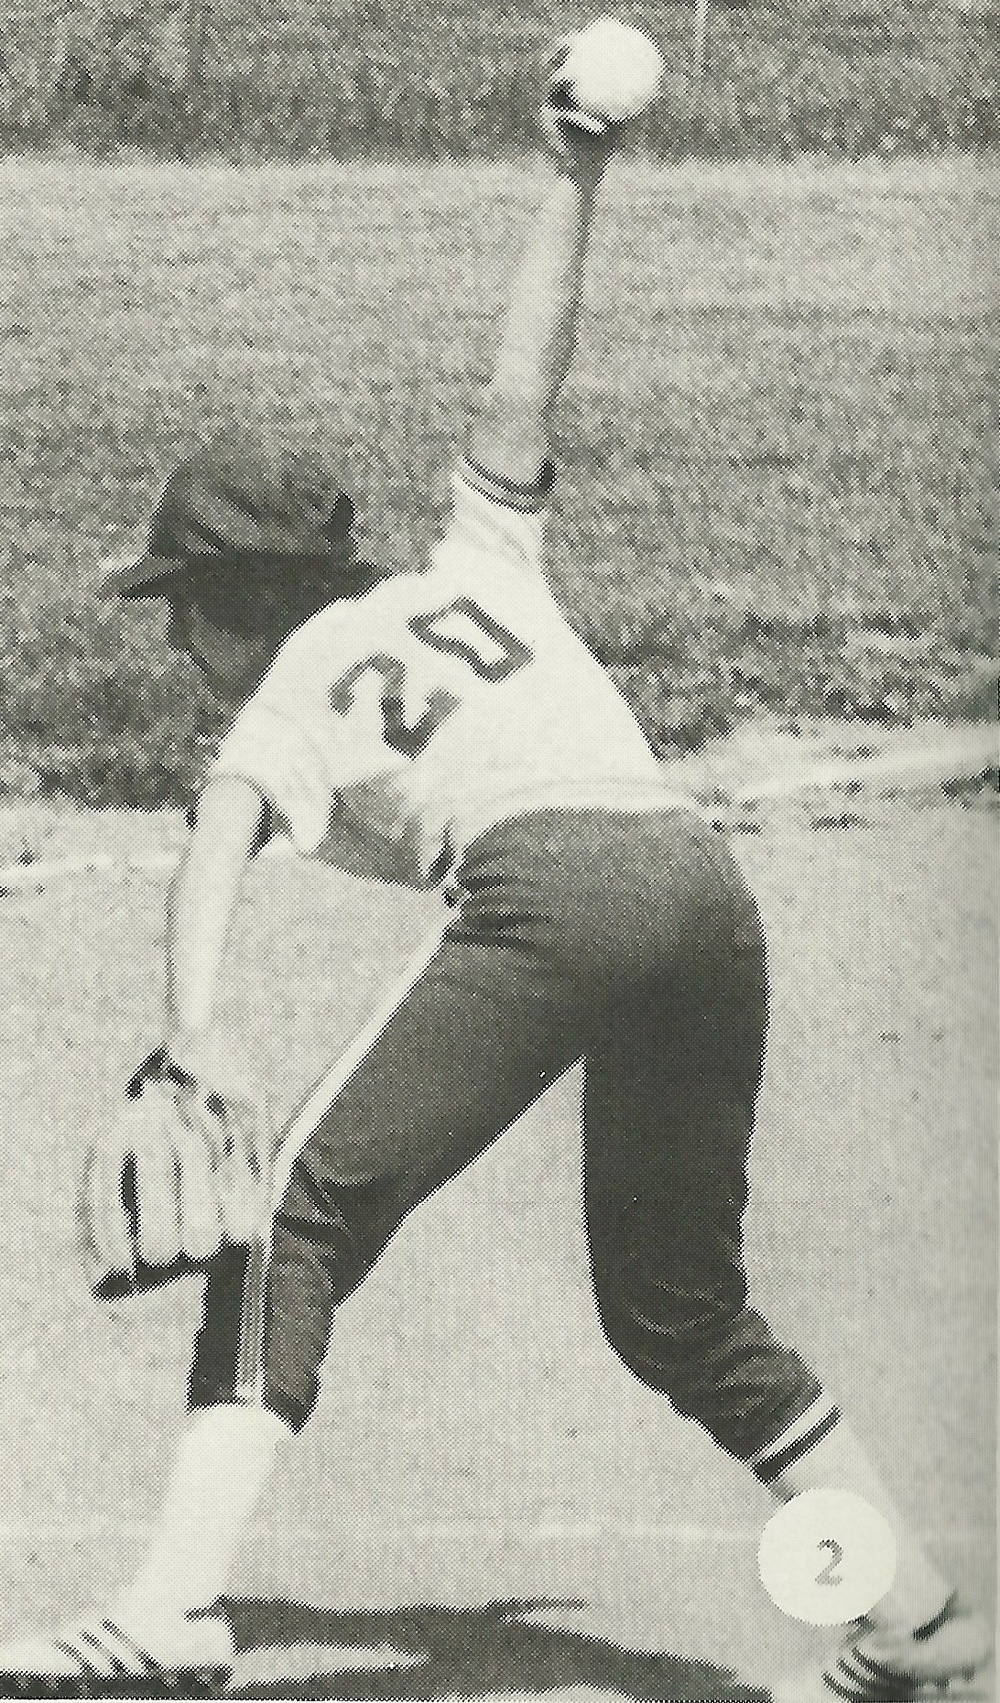 1982 Softball - Lori Francescon.jpeg